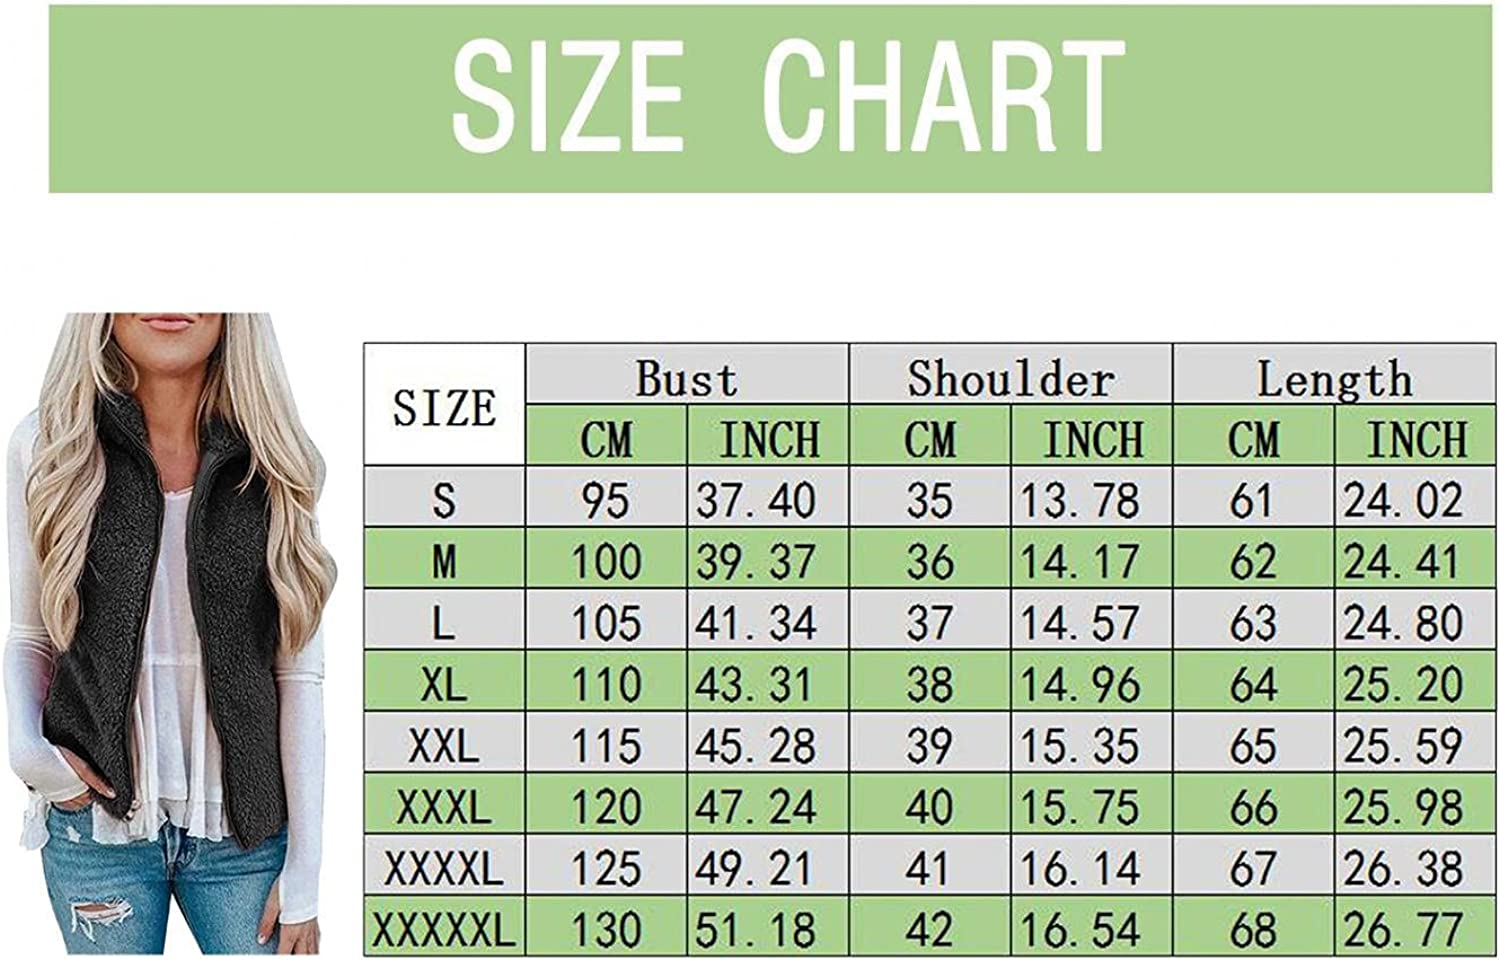 Women's Fuzzy Fleece Vest Plush Sleeveless Lapel Vests Outwear Solid Color Zipper Loose Thick Jackets Coat With Pockets